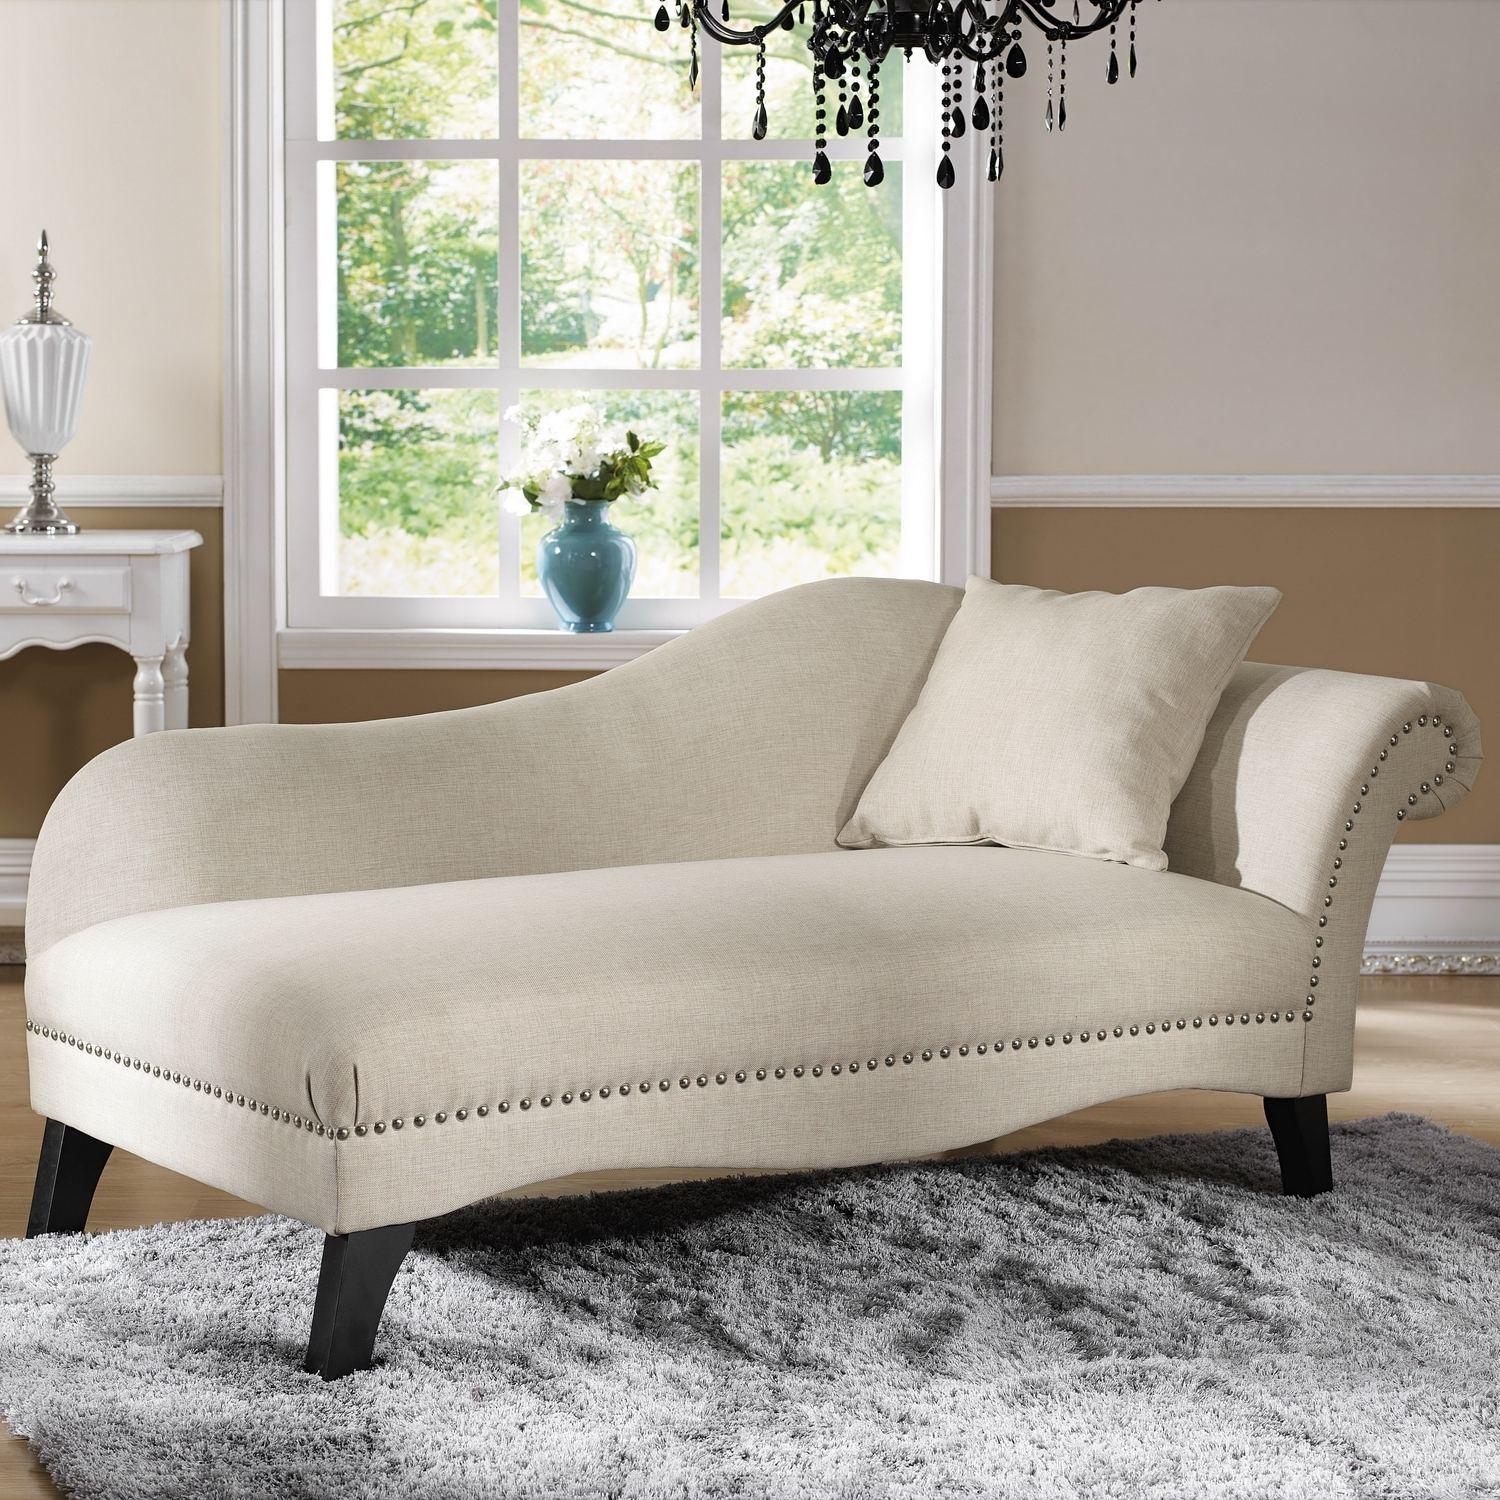 Baxton Studio 'phoebe' Beige Linen Modern Chaise Lounge – Free Intended For Widely Used Beige Chaise Lounges (View 6 of 15)